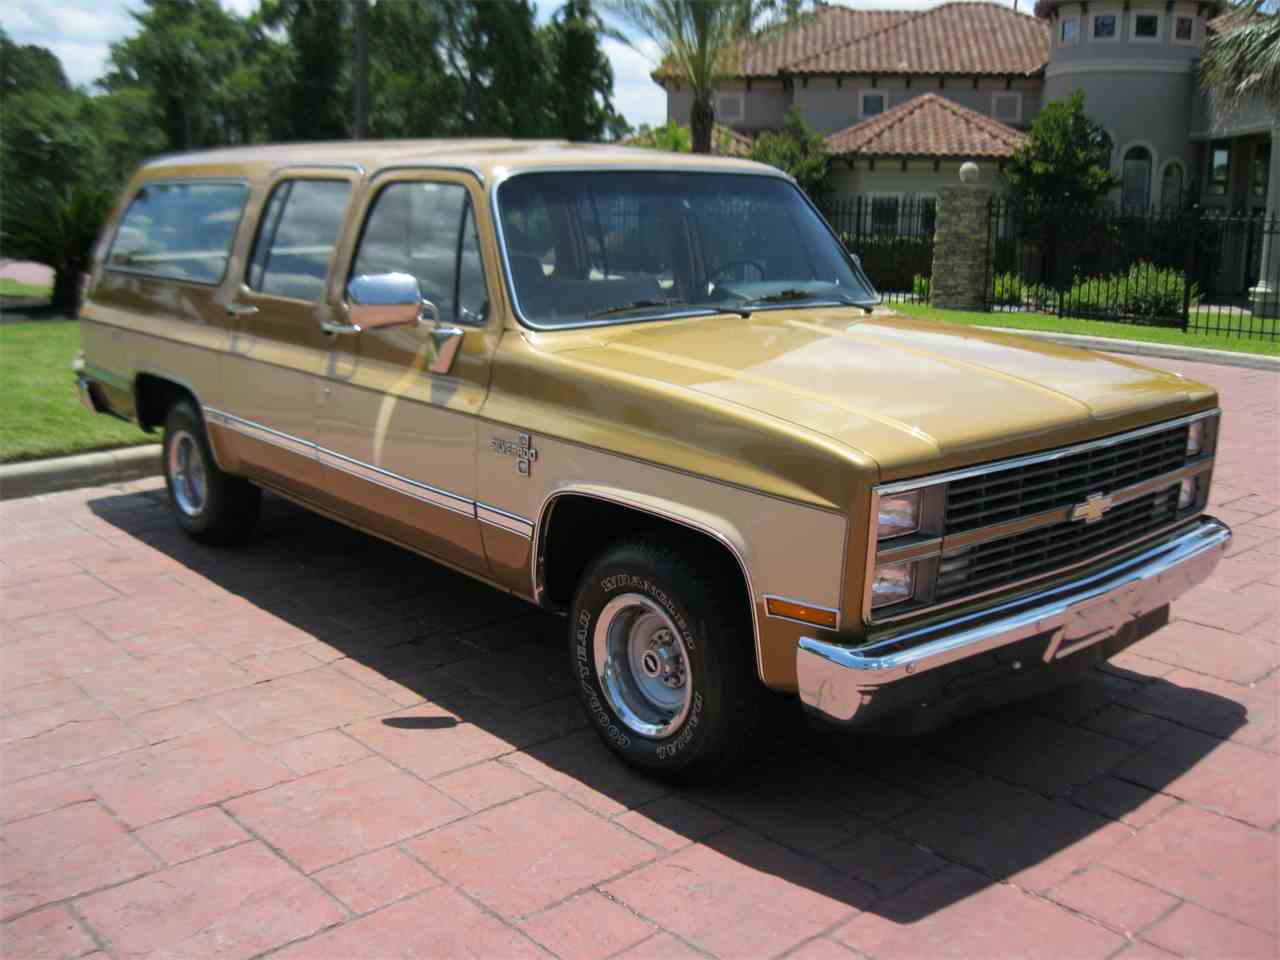 Used Cars For Sale In Indiana Under 5000 >> 1984 Chevrolet Suburban for Sale | ClassicCars.com | CC-994400